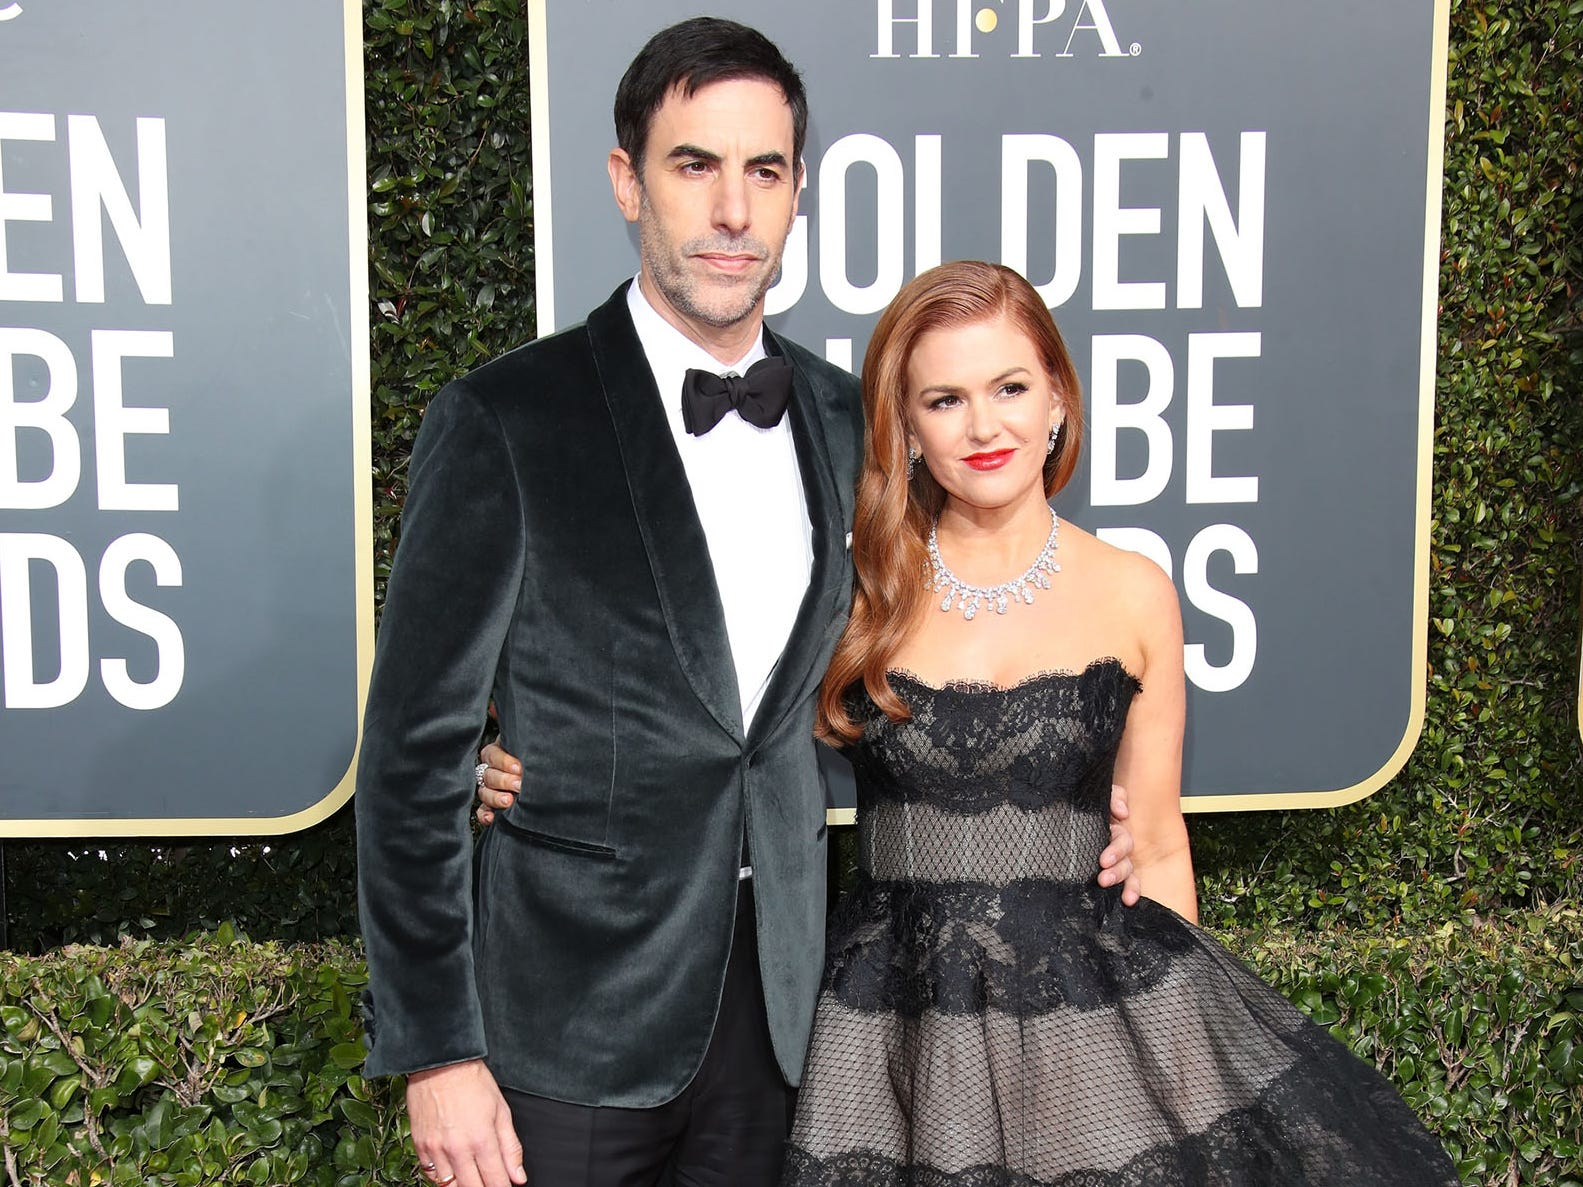 Sacha Baron Cohen, left and Isla Fisher